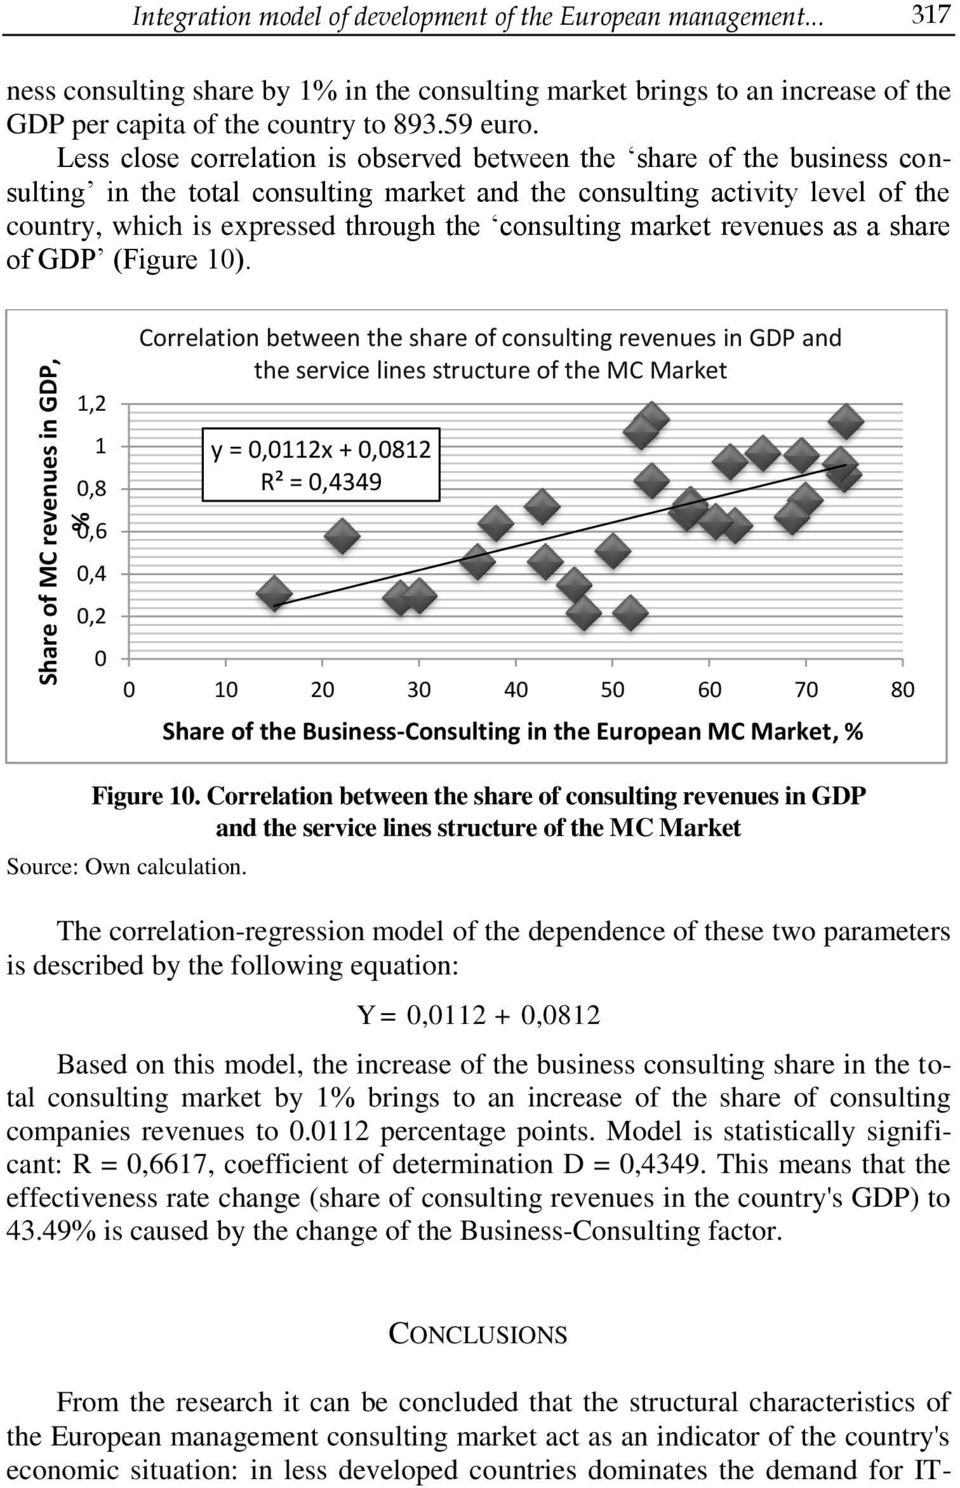 Less close correlation is observed between the share of the business consulting in the total consulting market and the consulting activity level of the country, which is expressed through the